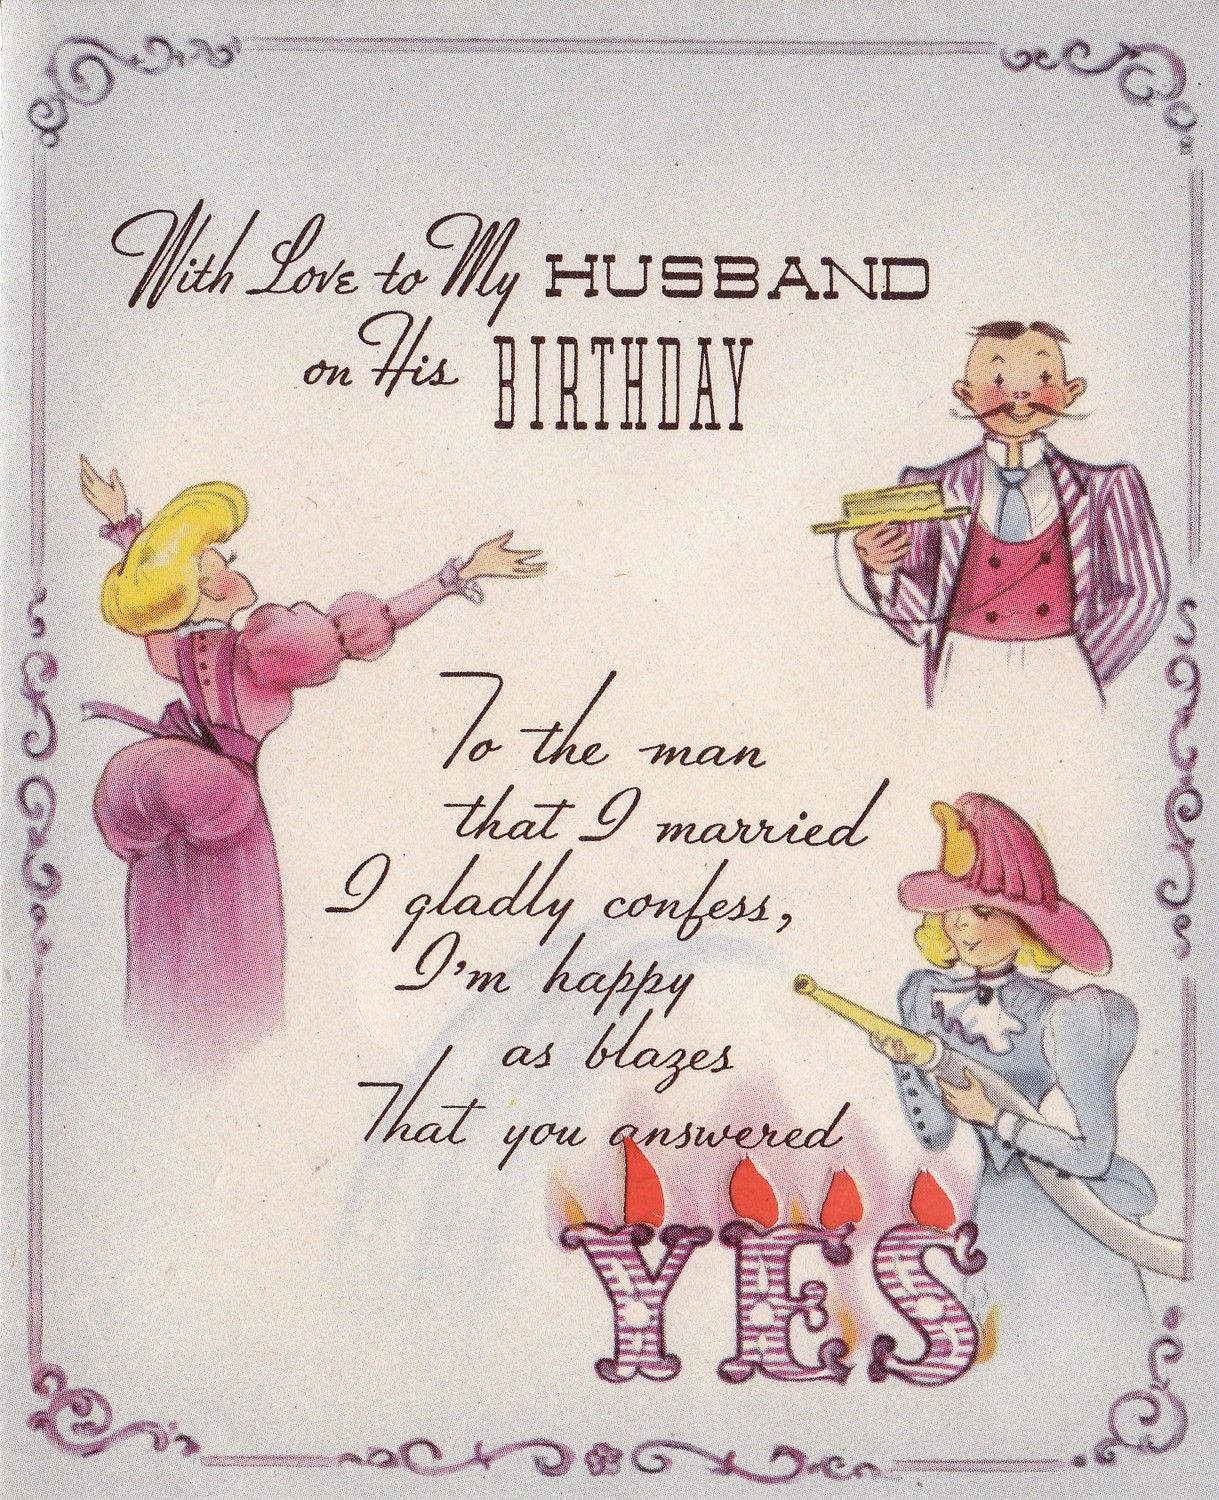 Birthday Cards for Husband with Love – Birthday Cards for Husband with Love